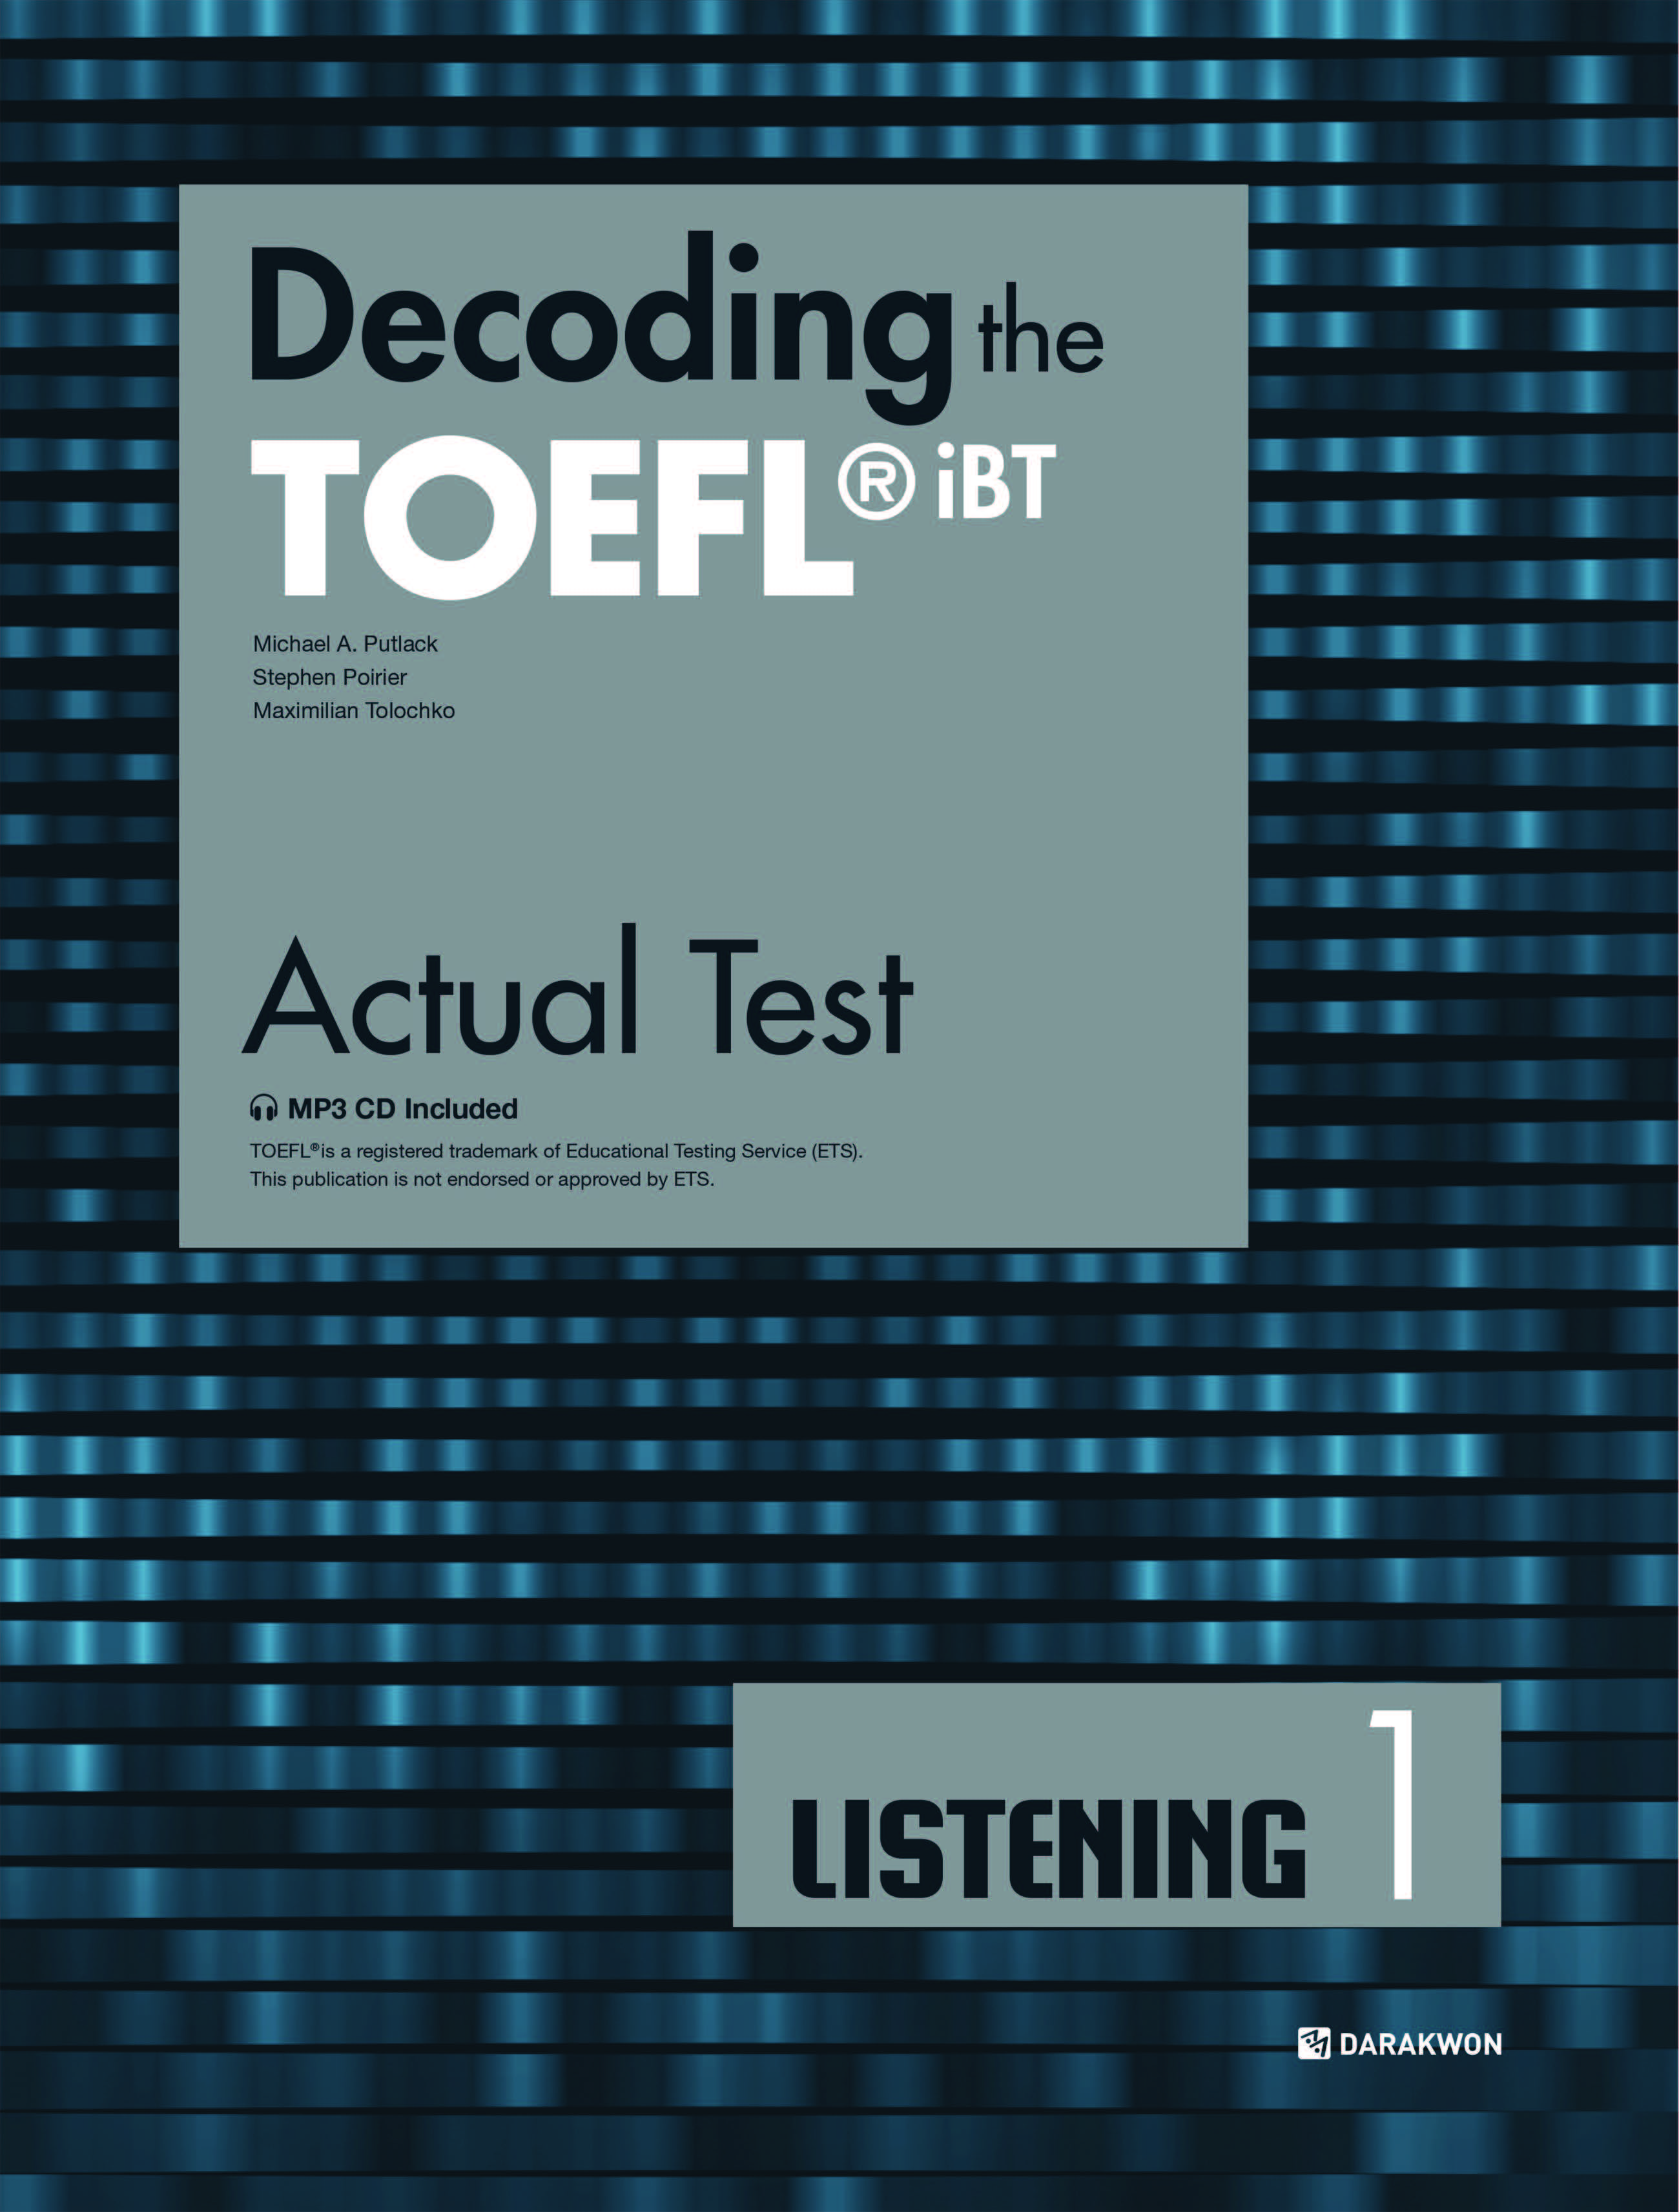 [Decoding the TOEFL iBT Actual Test] Decoding the TOEFL iBT Actual Test LISTENING 1